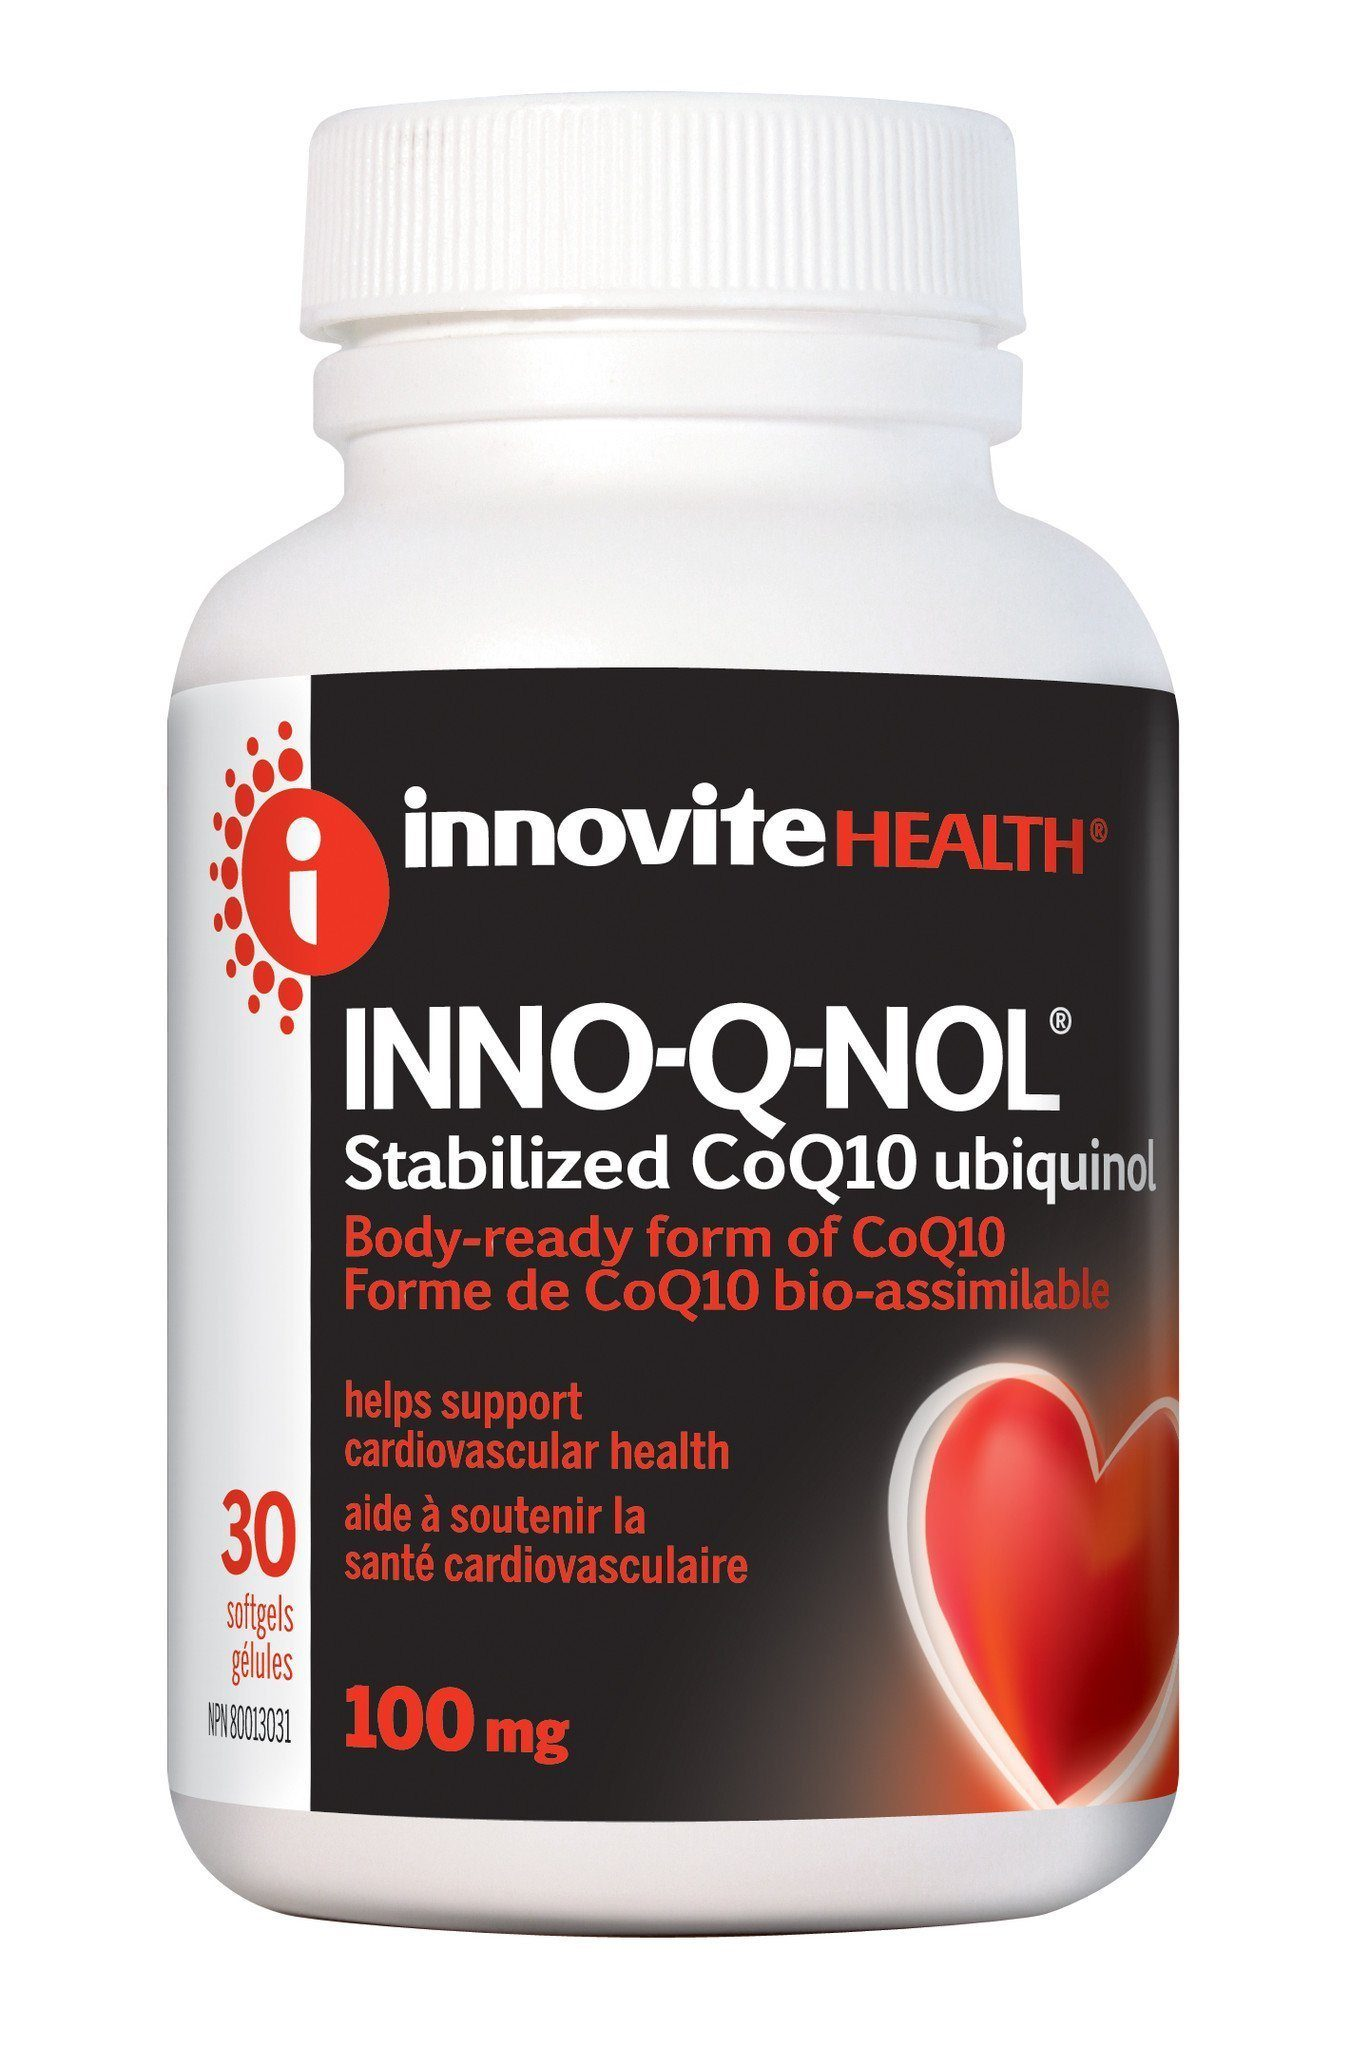 Supplements & Vitamins - Inno-Vite - Inno-Q-Nol 100mg, 30 Softgels